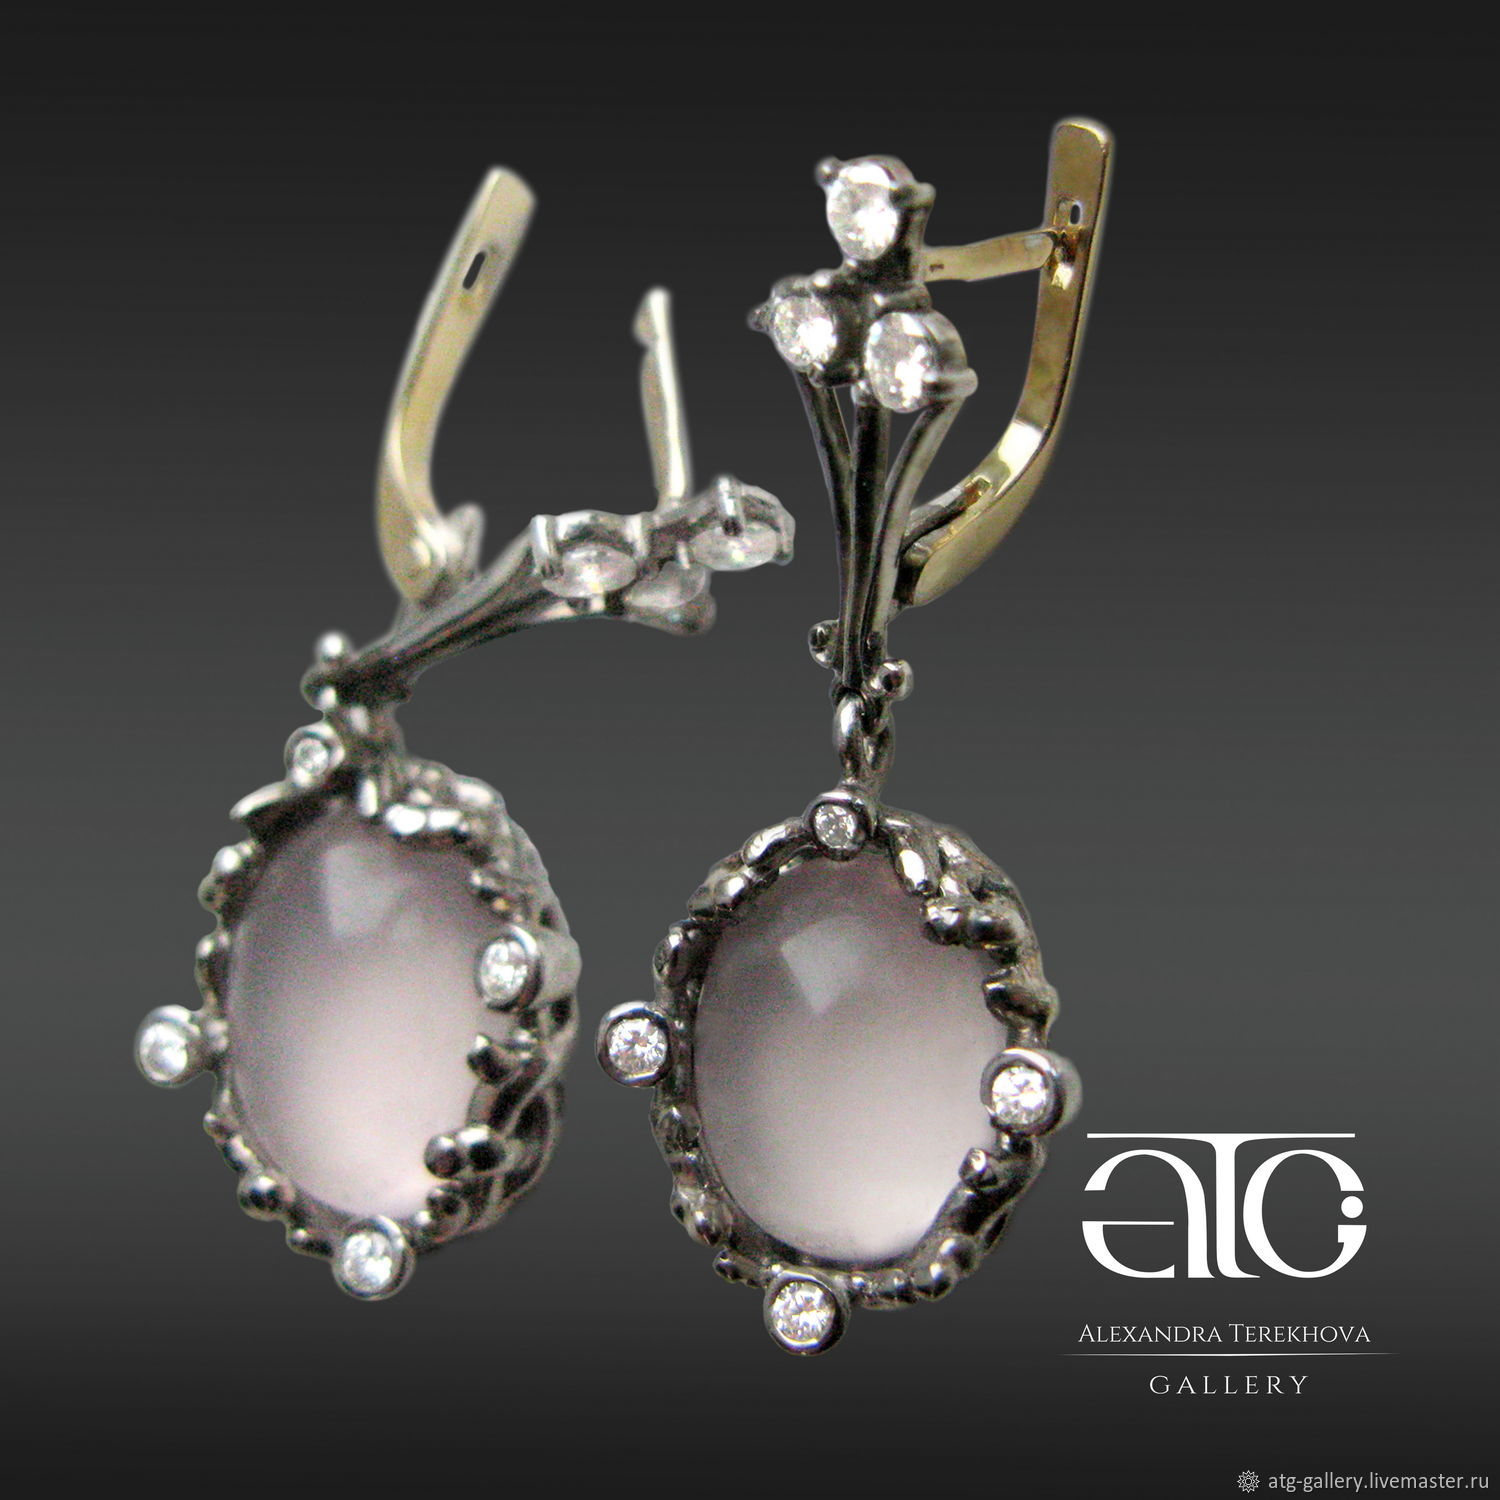 Made to order. Big. very beautiful earrings with cabochon pink quartz and diamonds.